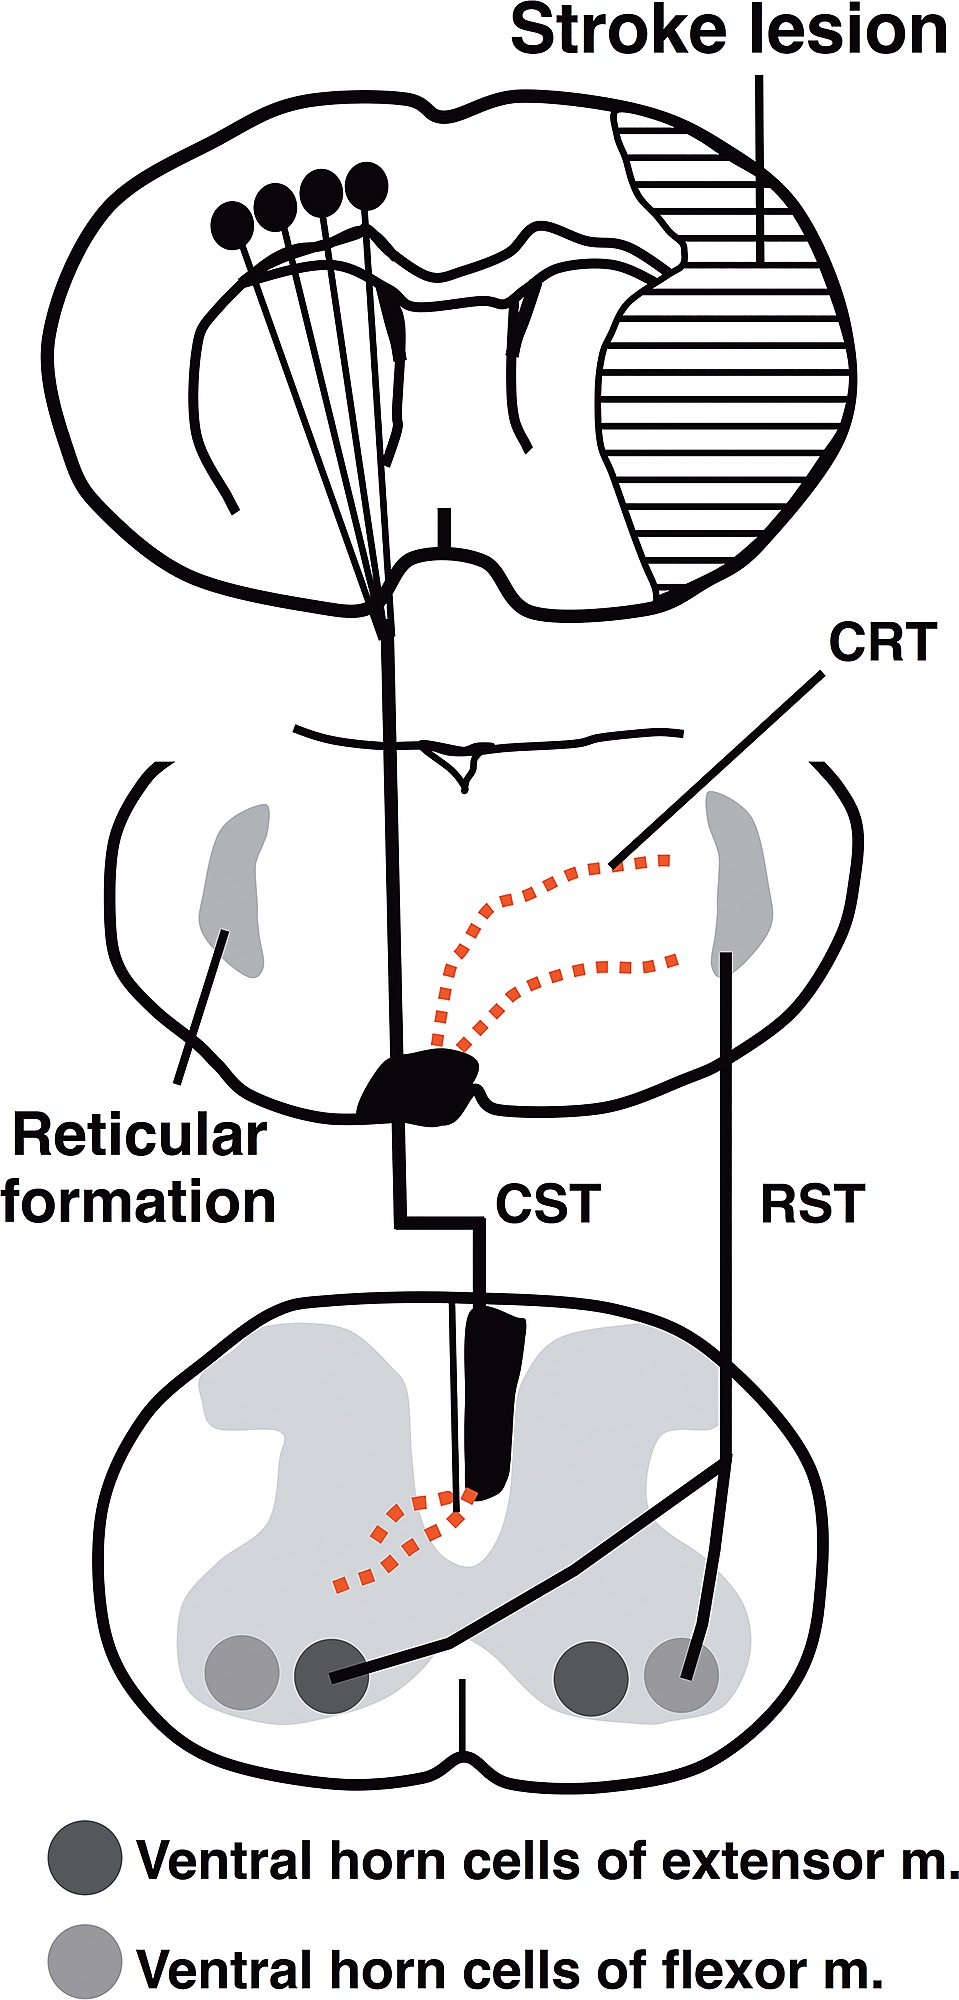 medium resolution of schematic diagram showing enhancement of the midline crossing fibers by lotus overexpression after mcao